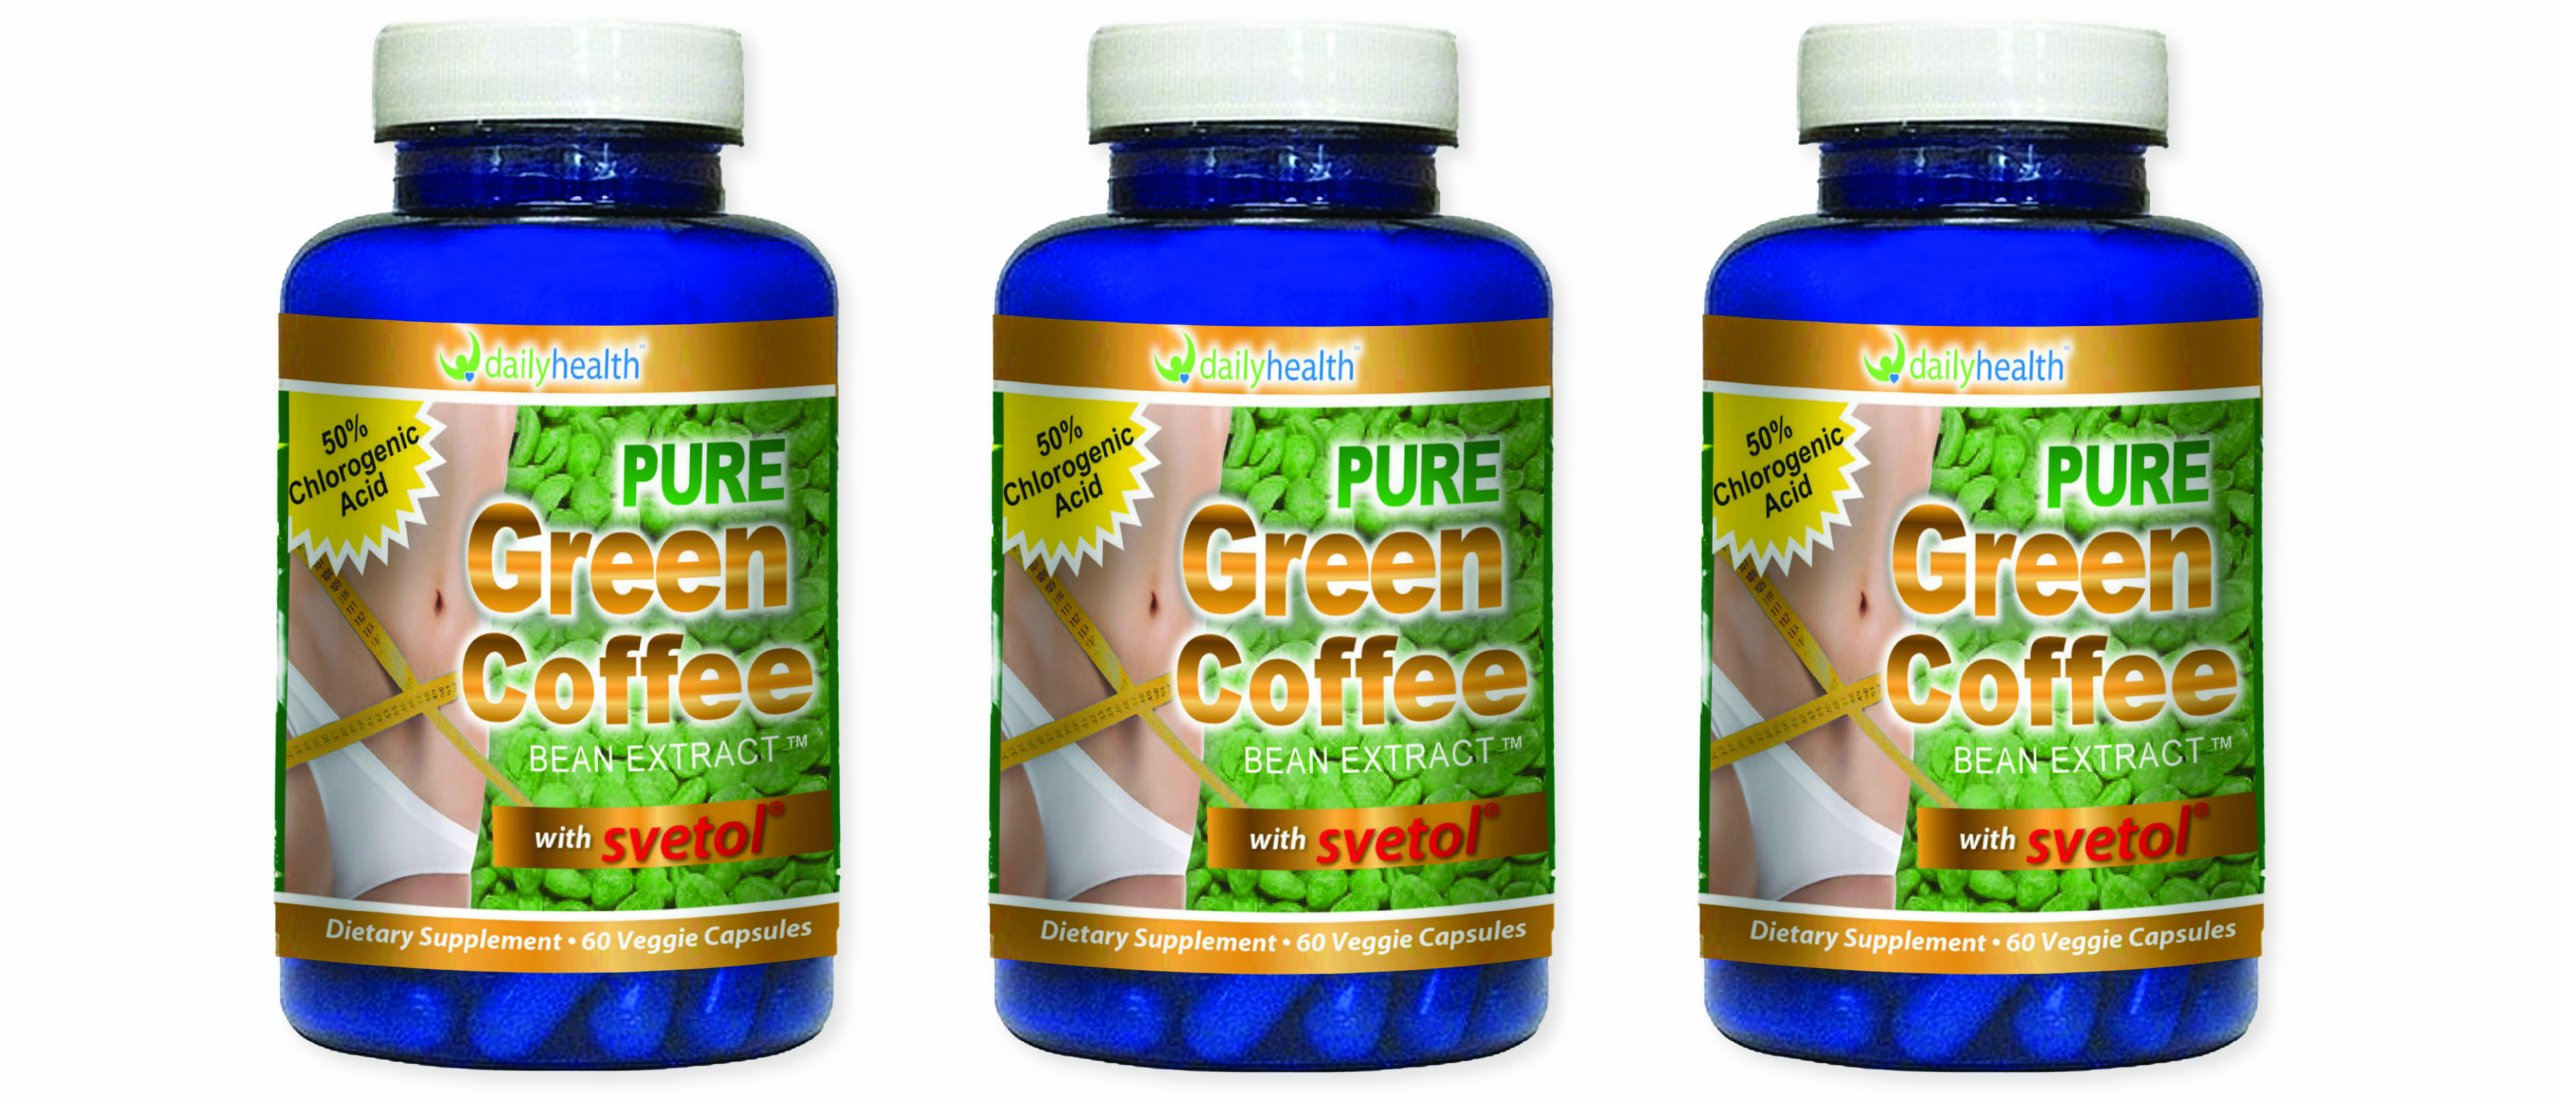 Green Coffee Bean Extract Pure 800 mg with Svetol 60 capsules 3 bottle pack Dietary Supplement